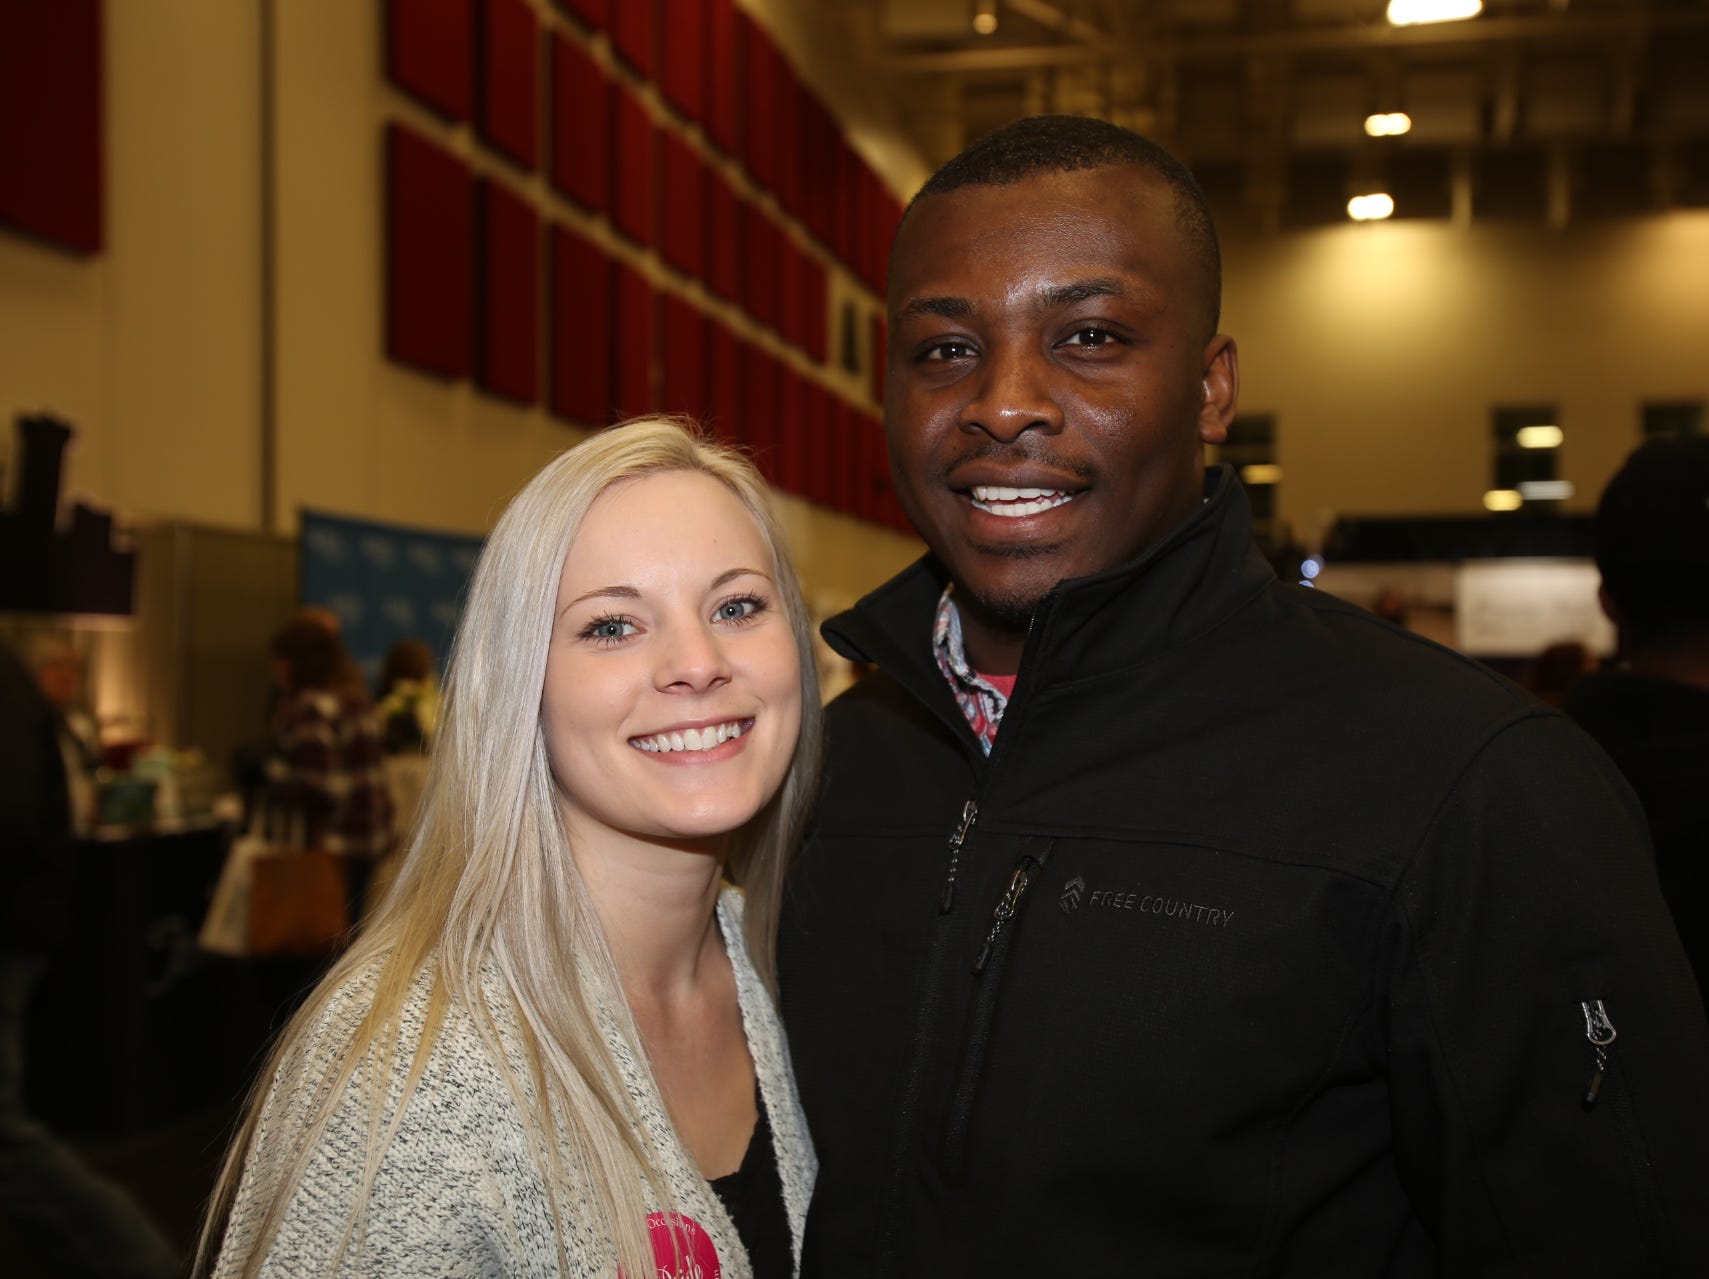 Misty Parnell and Emmanuel Nkwocha